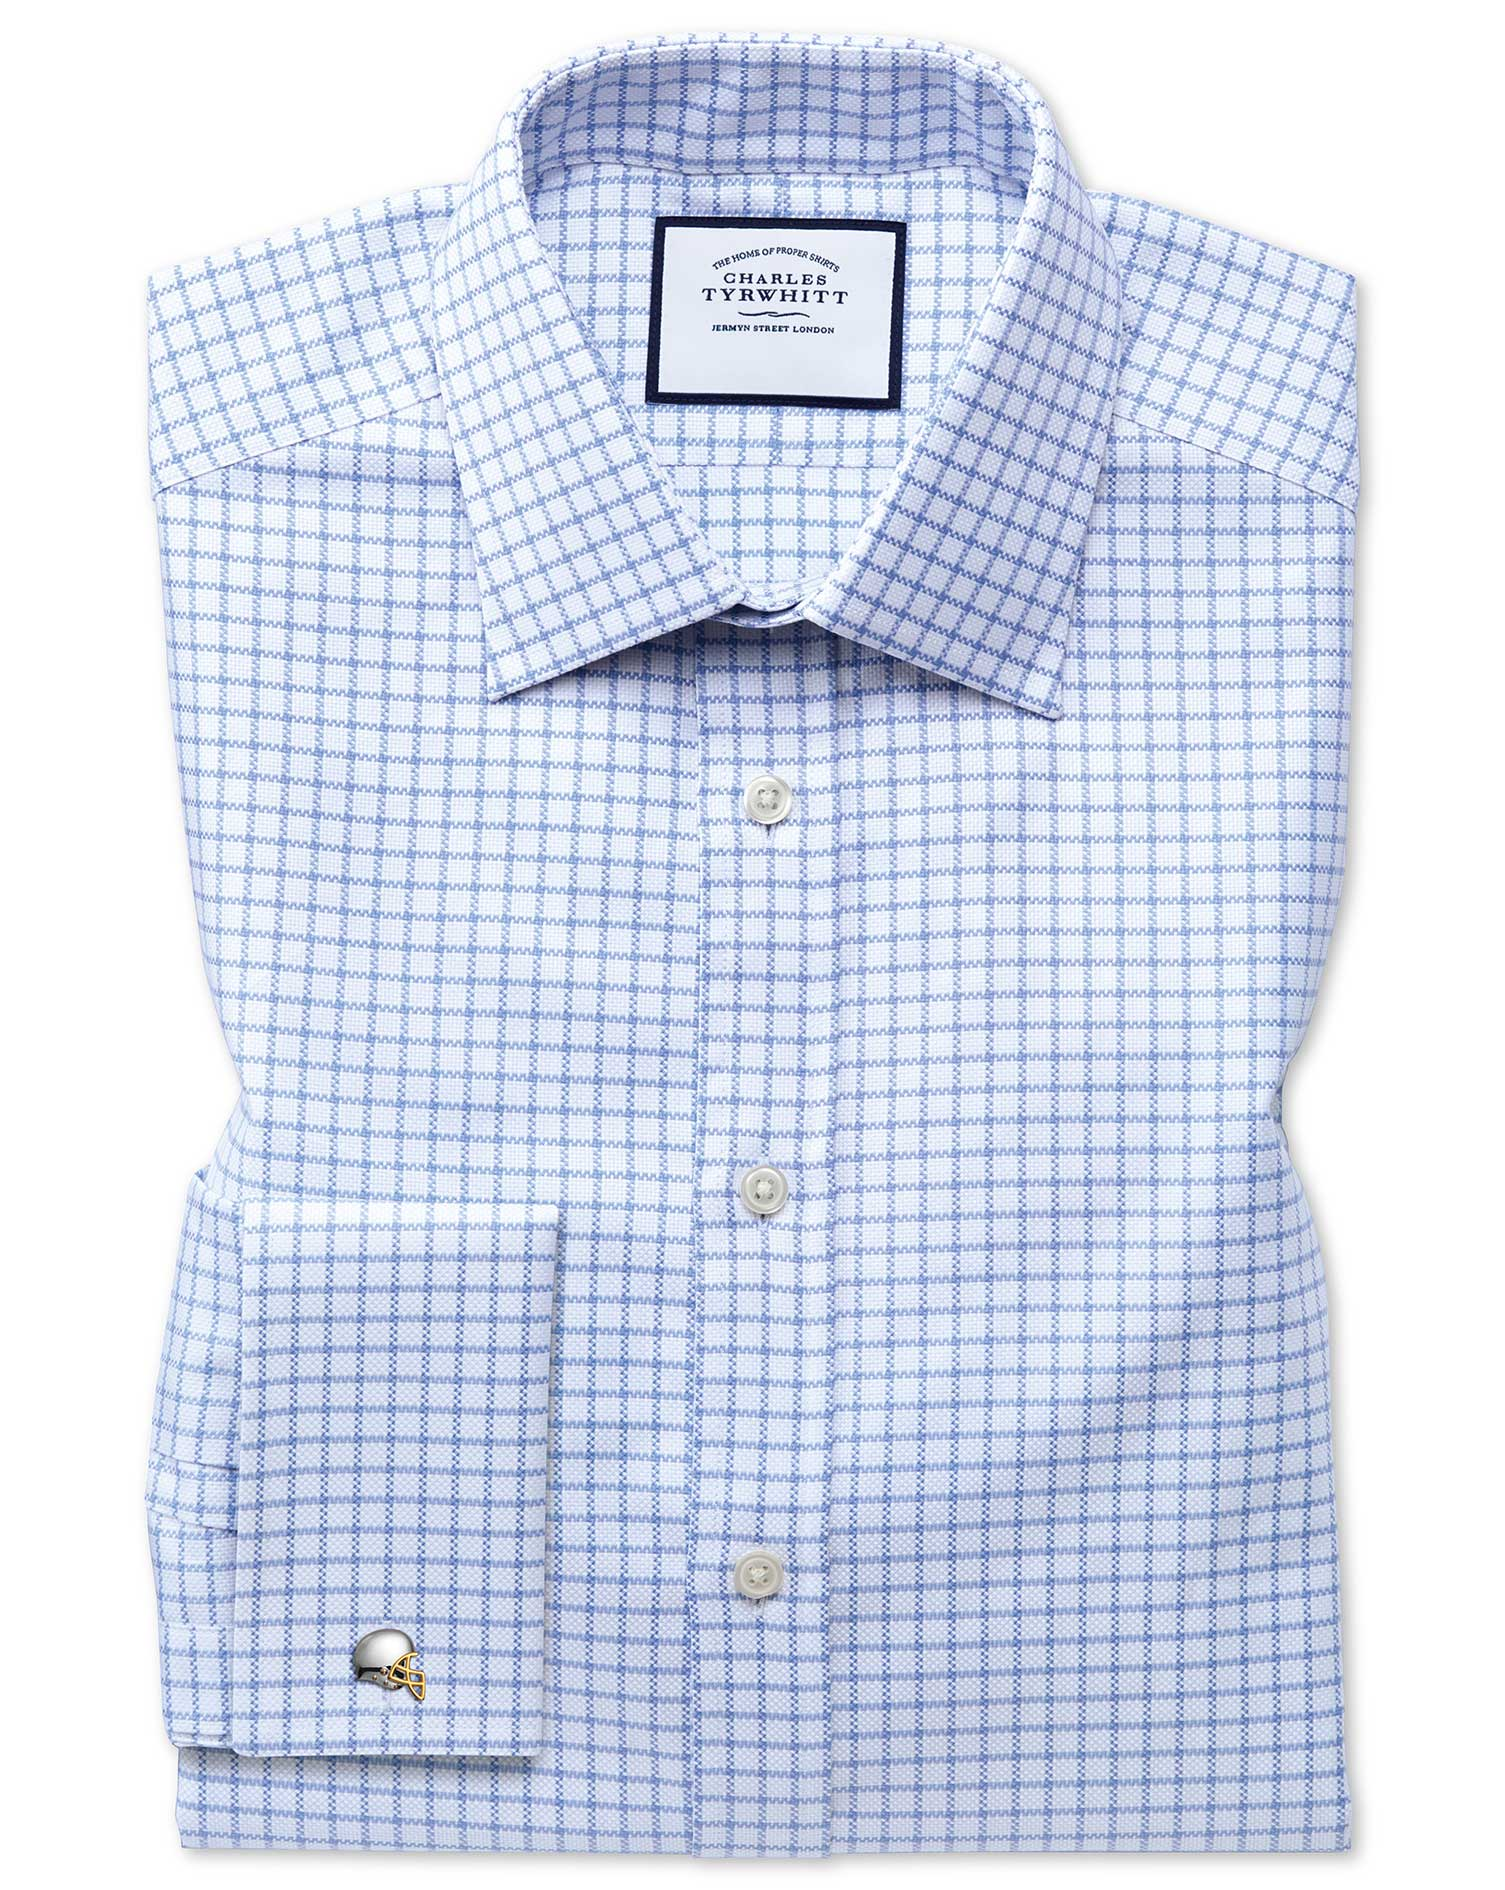 Extra Slim Fit Egyptian Cotton Royal Oxford Sky Blue Check Formal Shirt Double Cuff Size 15/32 by Ch